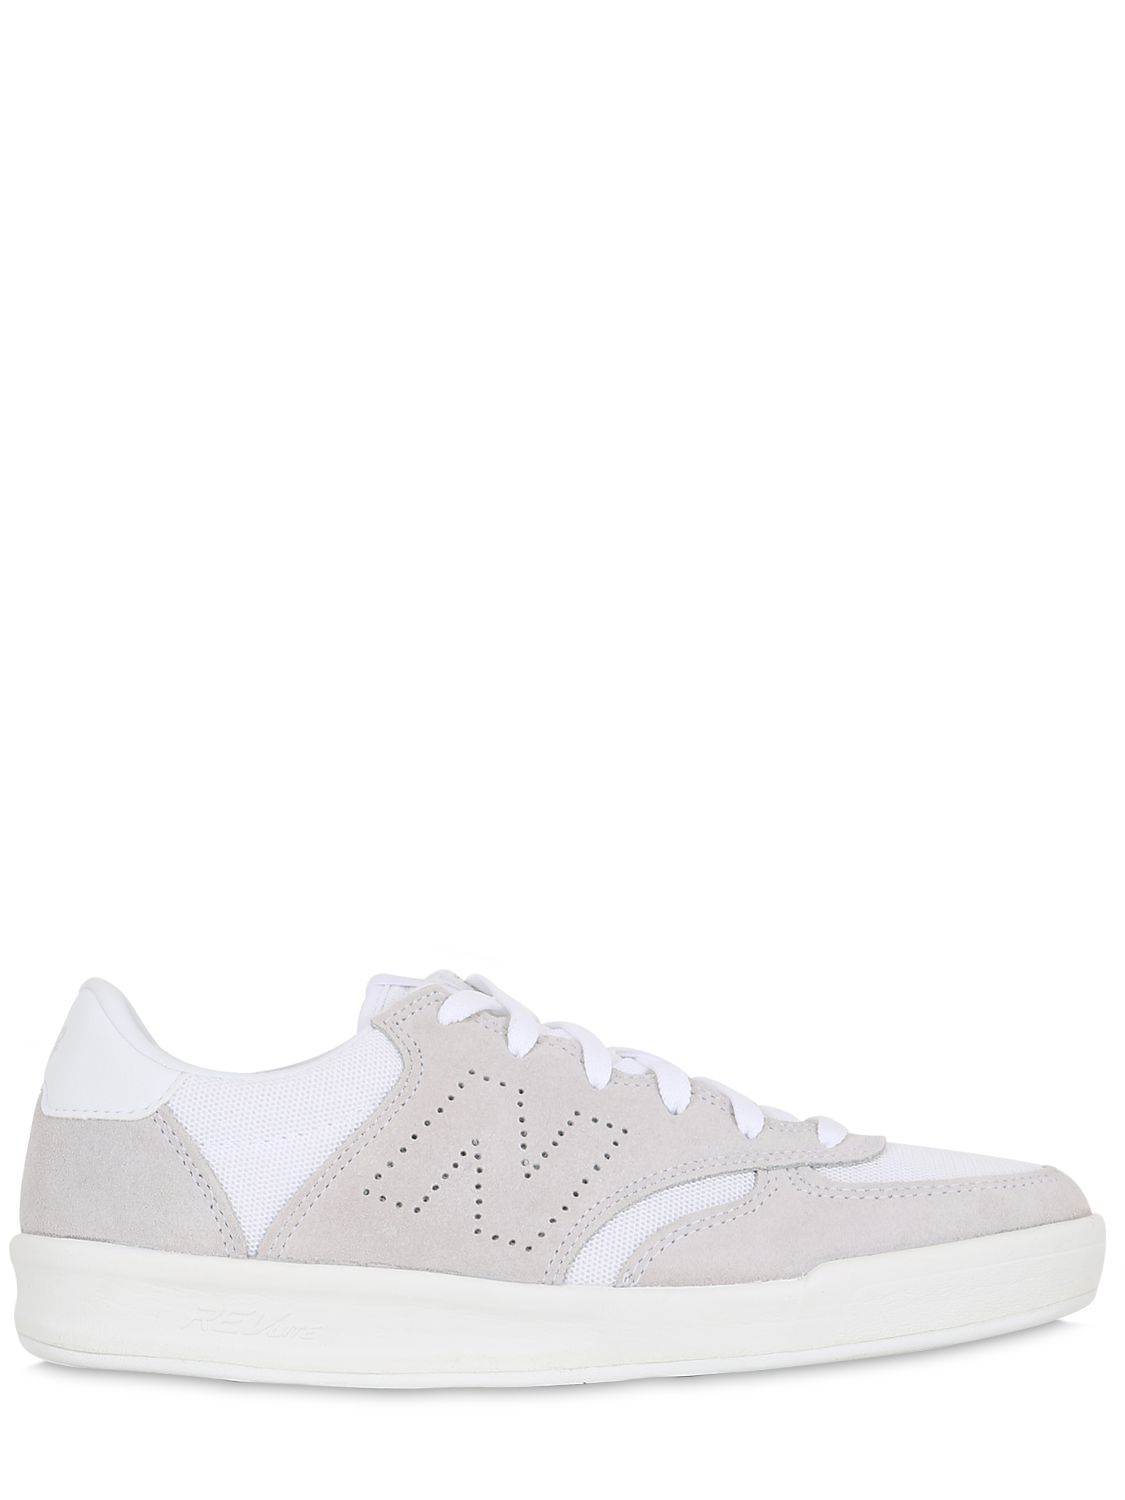 New Balance 300 Suede & Canvas Sneakers in White/Beige (White) for ...